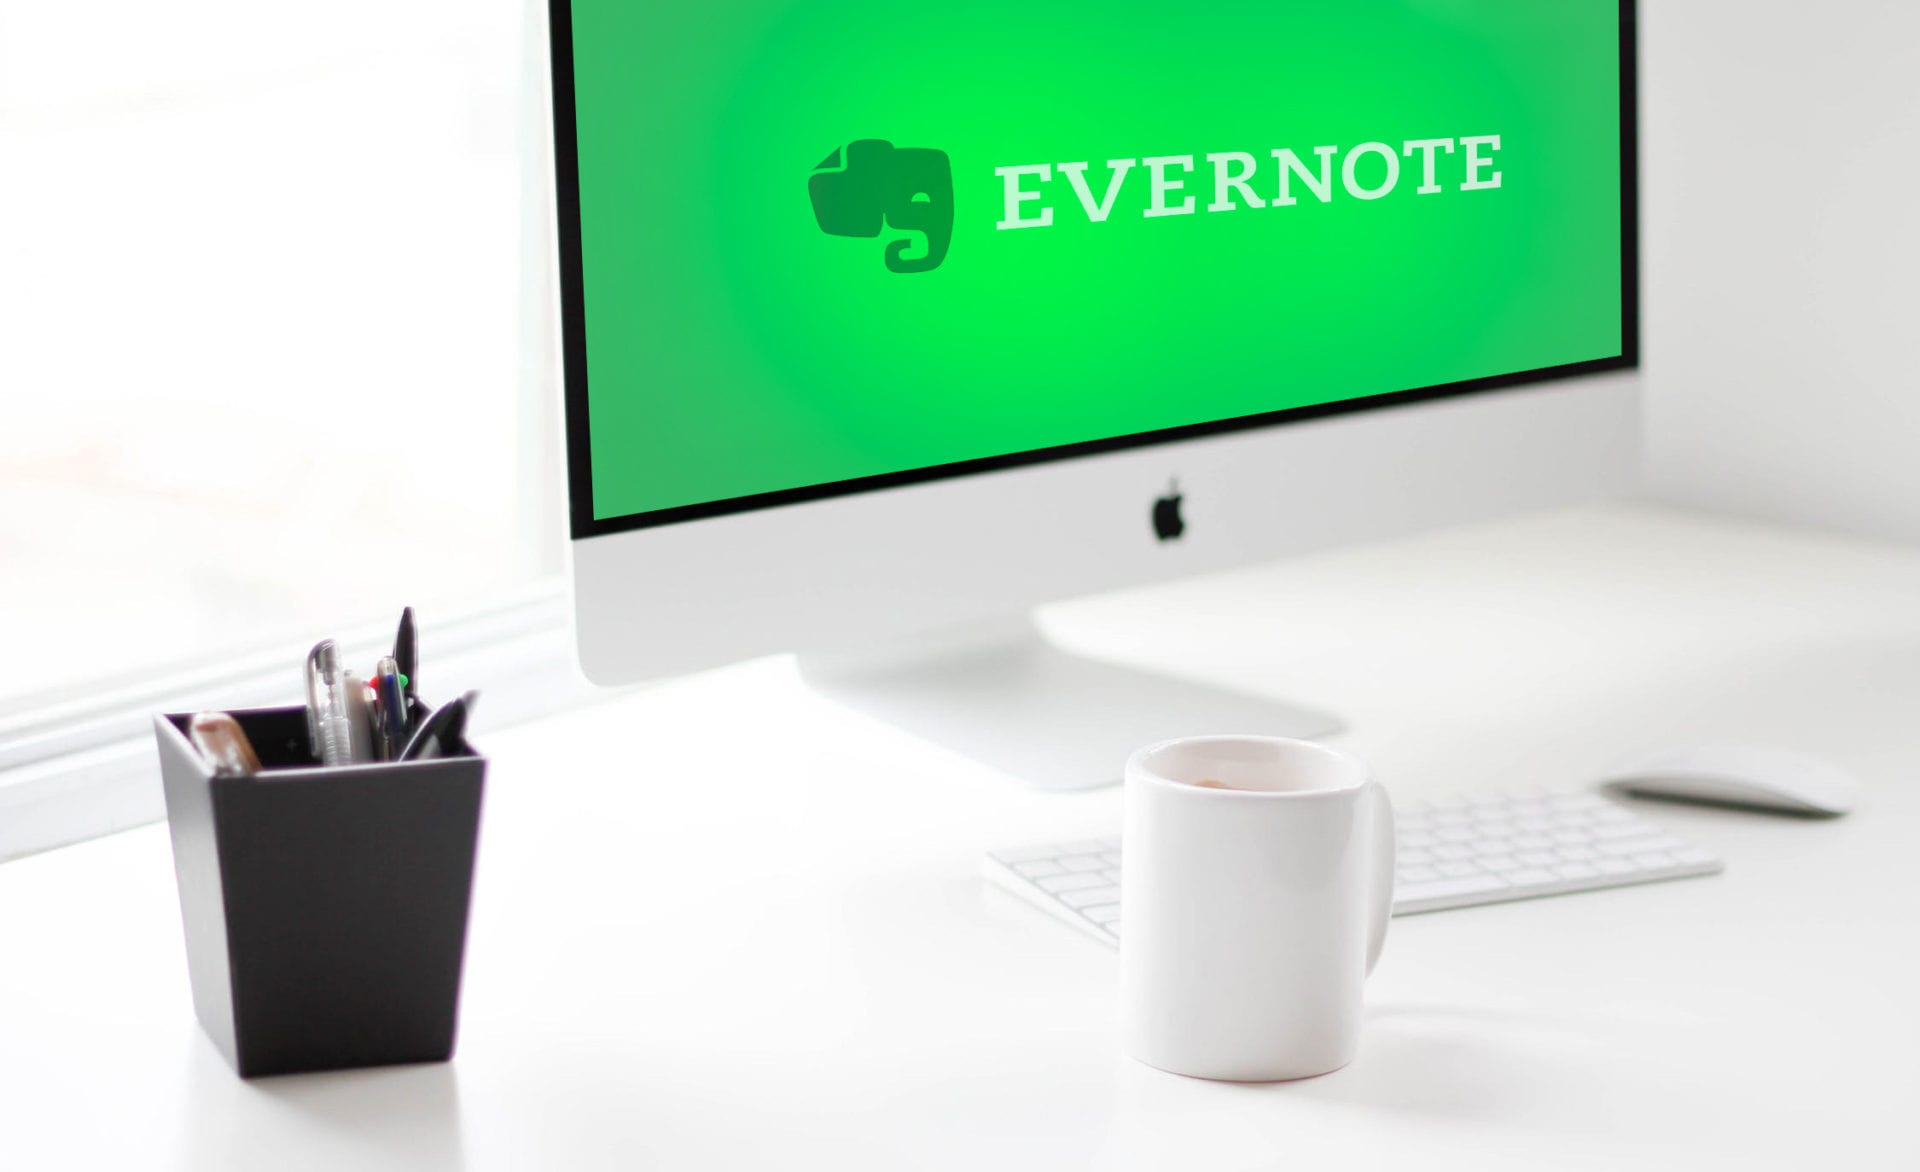 White desk with coffee mug, pencil holder, and iMac screen with Evernote logo on screen